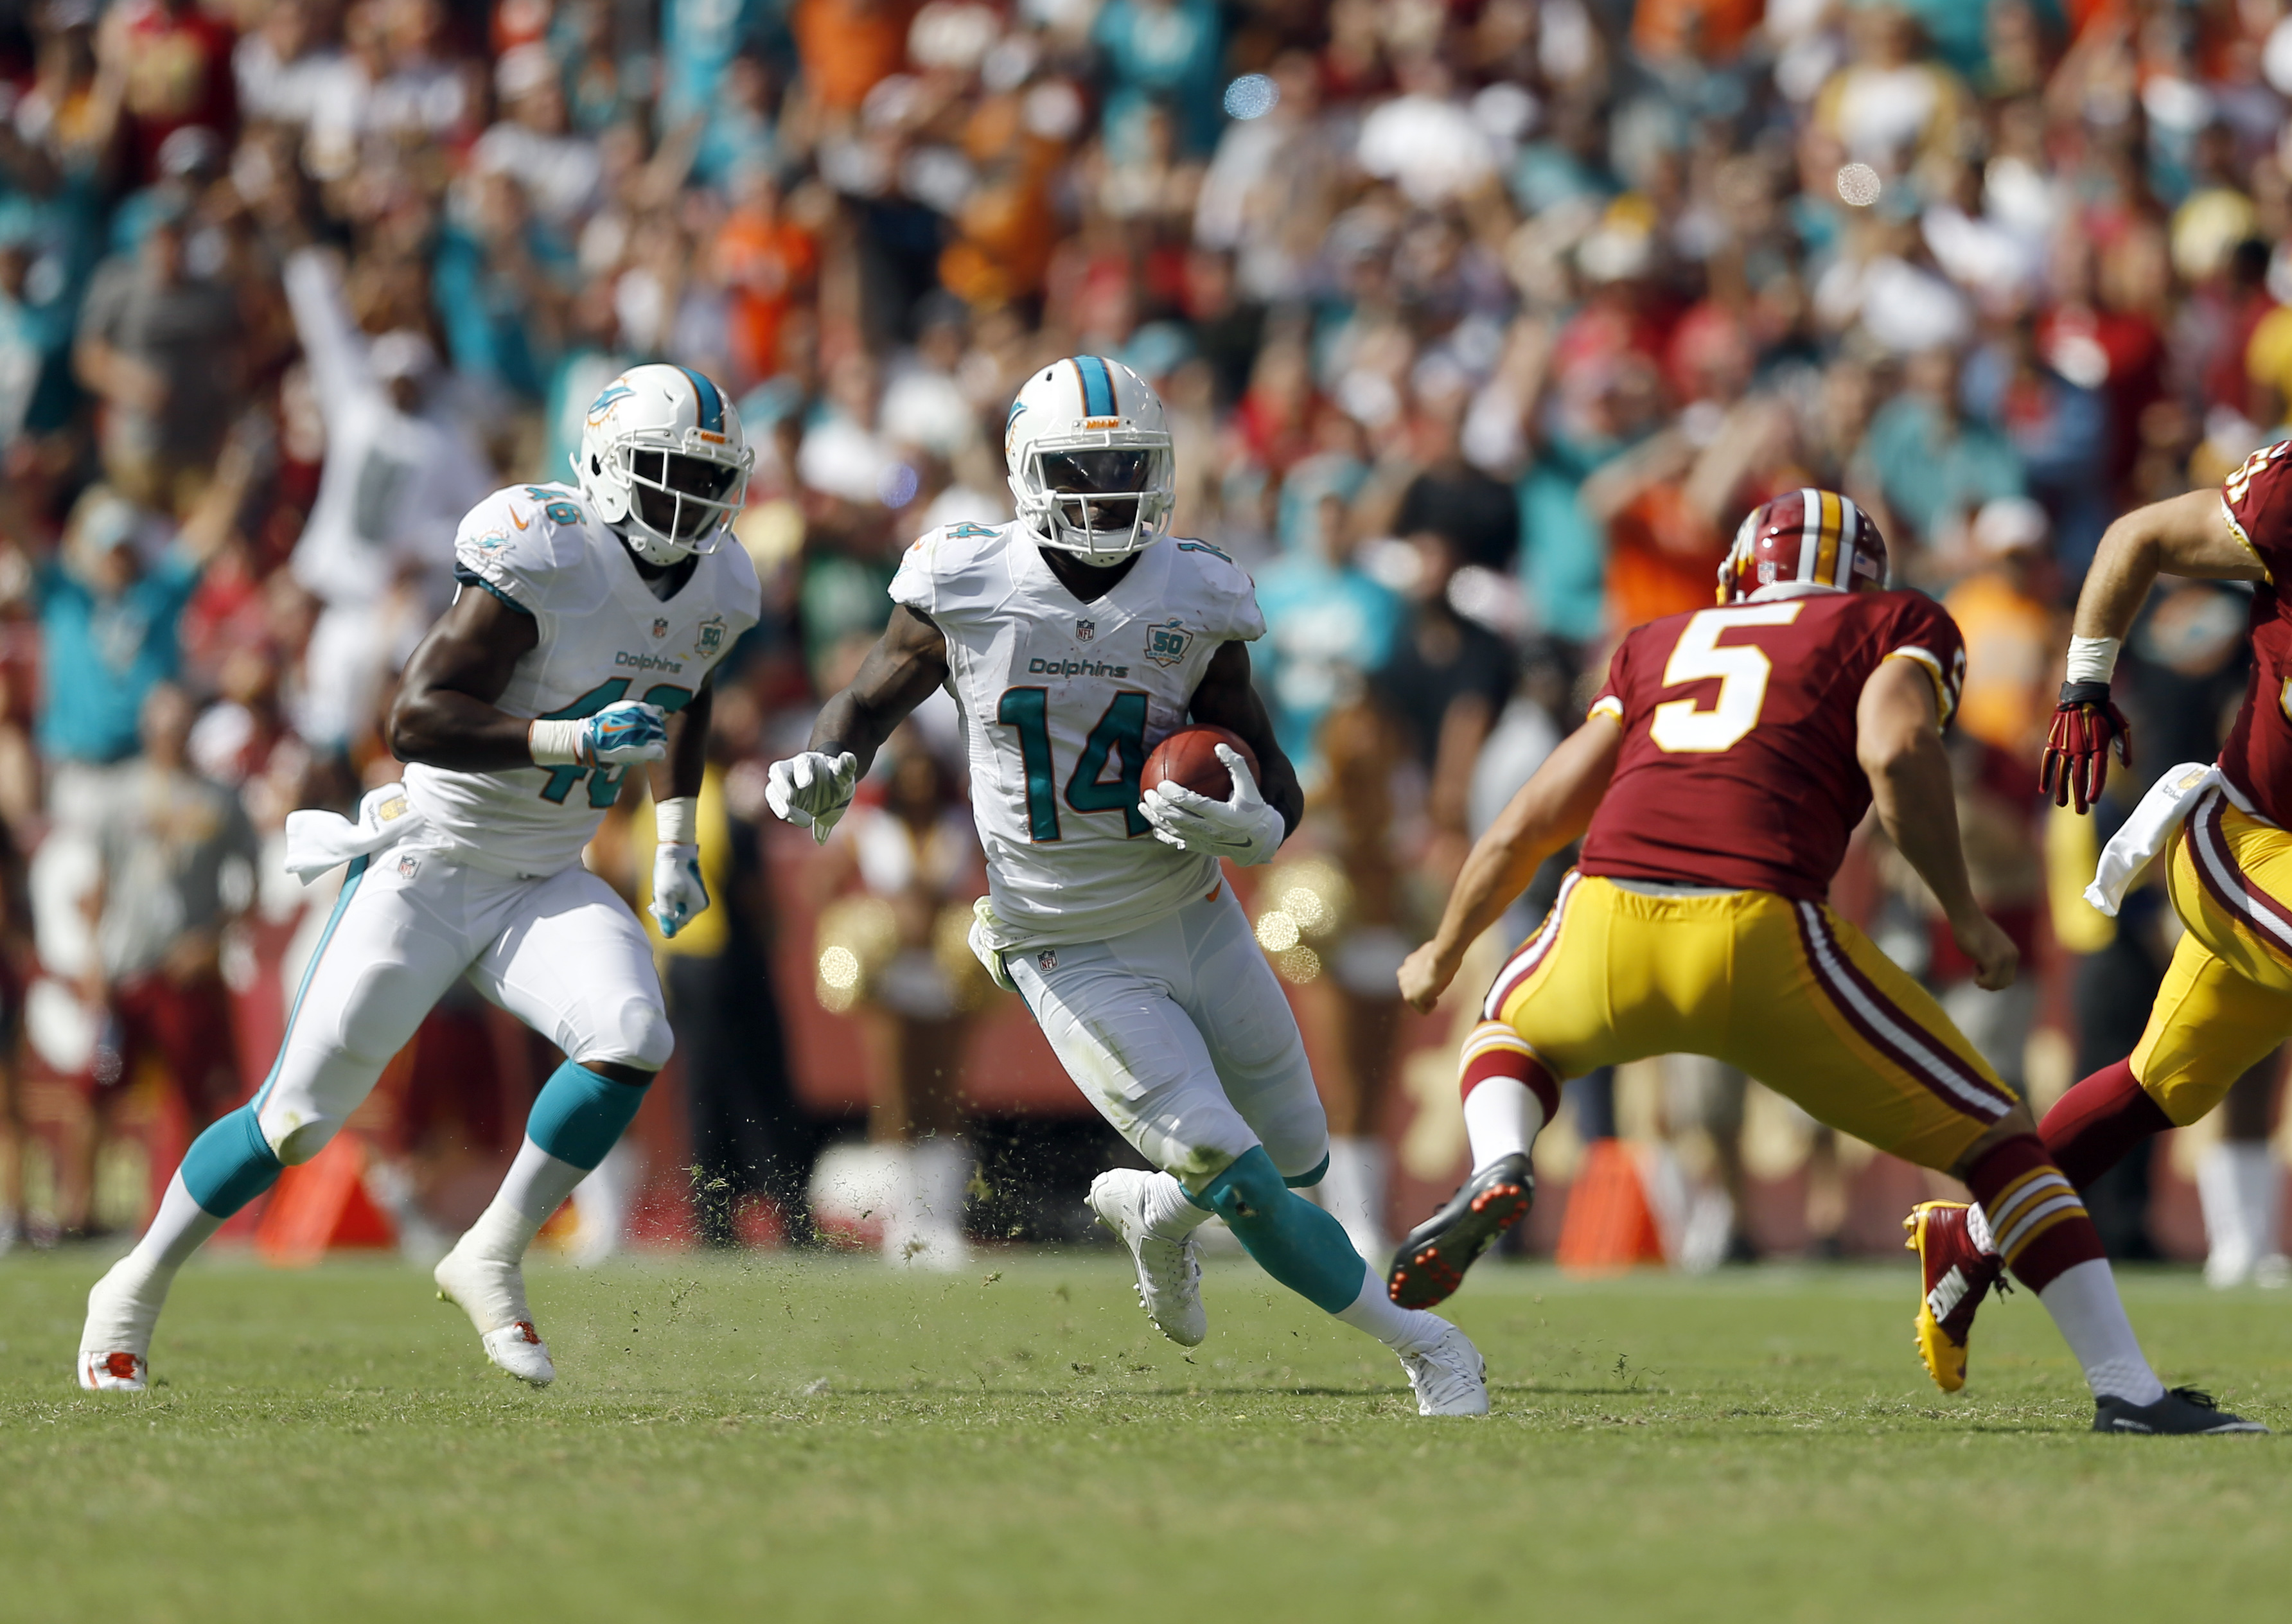 Miami Dolphins wide receiver Jarvis Landry (14) returns a punt 69 yards for a touchdown past Washington Redskins punter Tress Way (5) during the second half of an NFL football game Sunday, Sept. 13, 2015, in Landover, Md. (AP Photo/Patrick Semansky)